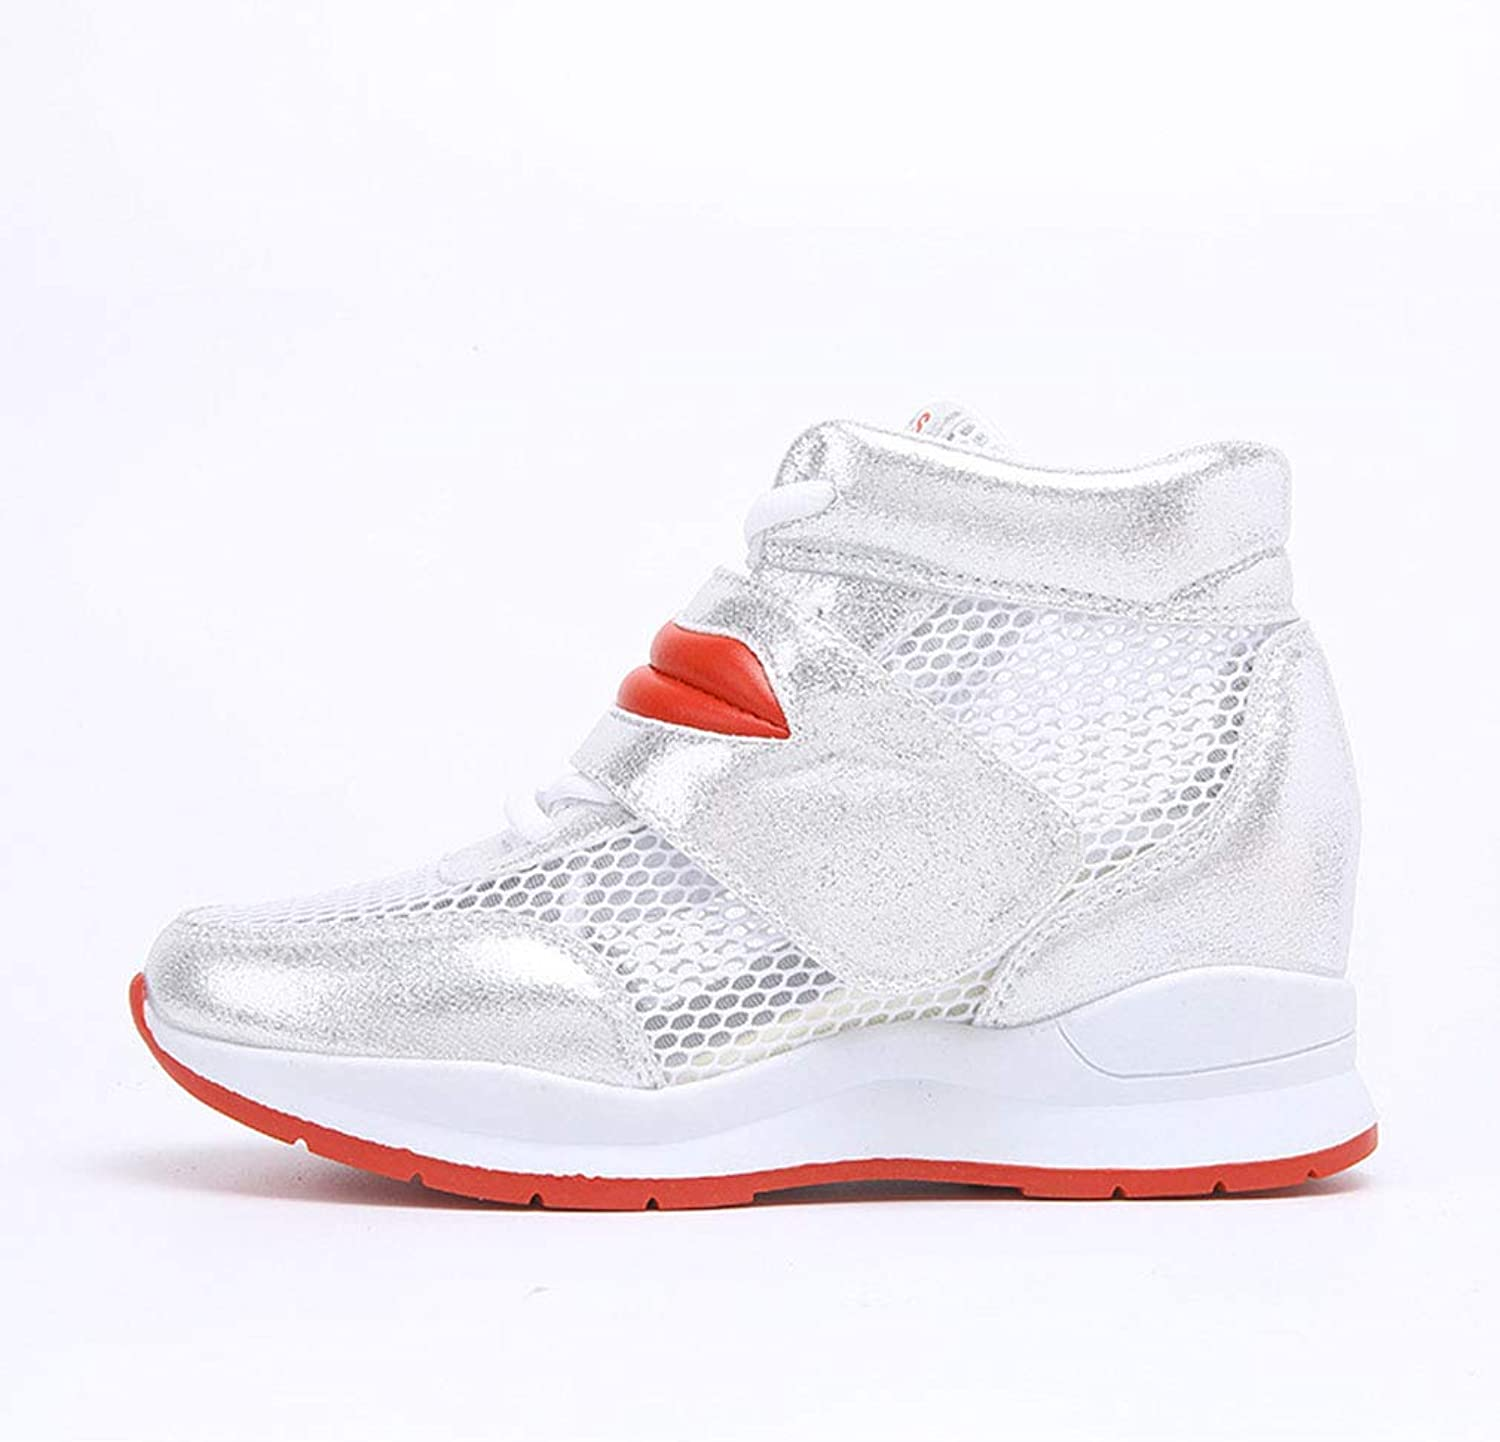 Women's Casual shoes Mesh Breathable Sports shoes High-Top Sneakers Wedge Outdoor Walking shoes Fashion Running shoes,A,36